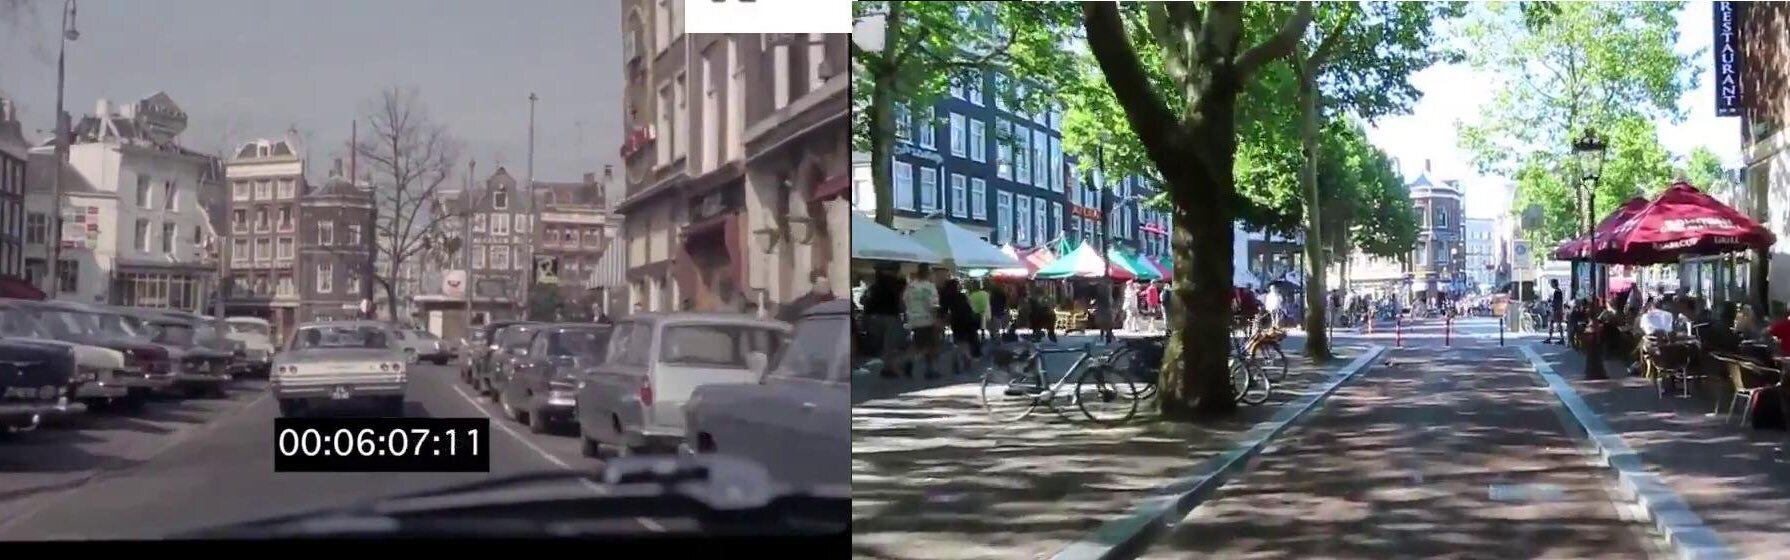 Rembrandtplein in Amsterdam 1960s vs. 2019 — Radical change in cities is possible! — courtesy @hackneycyclist